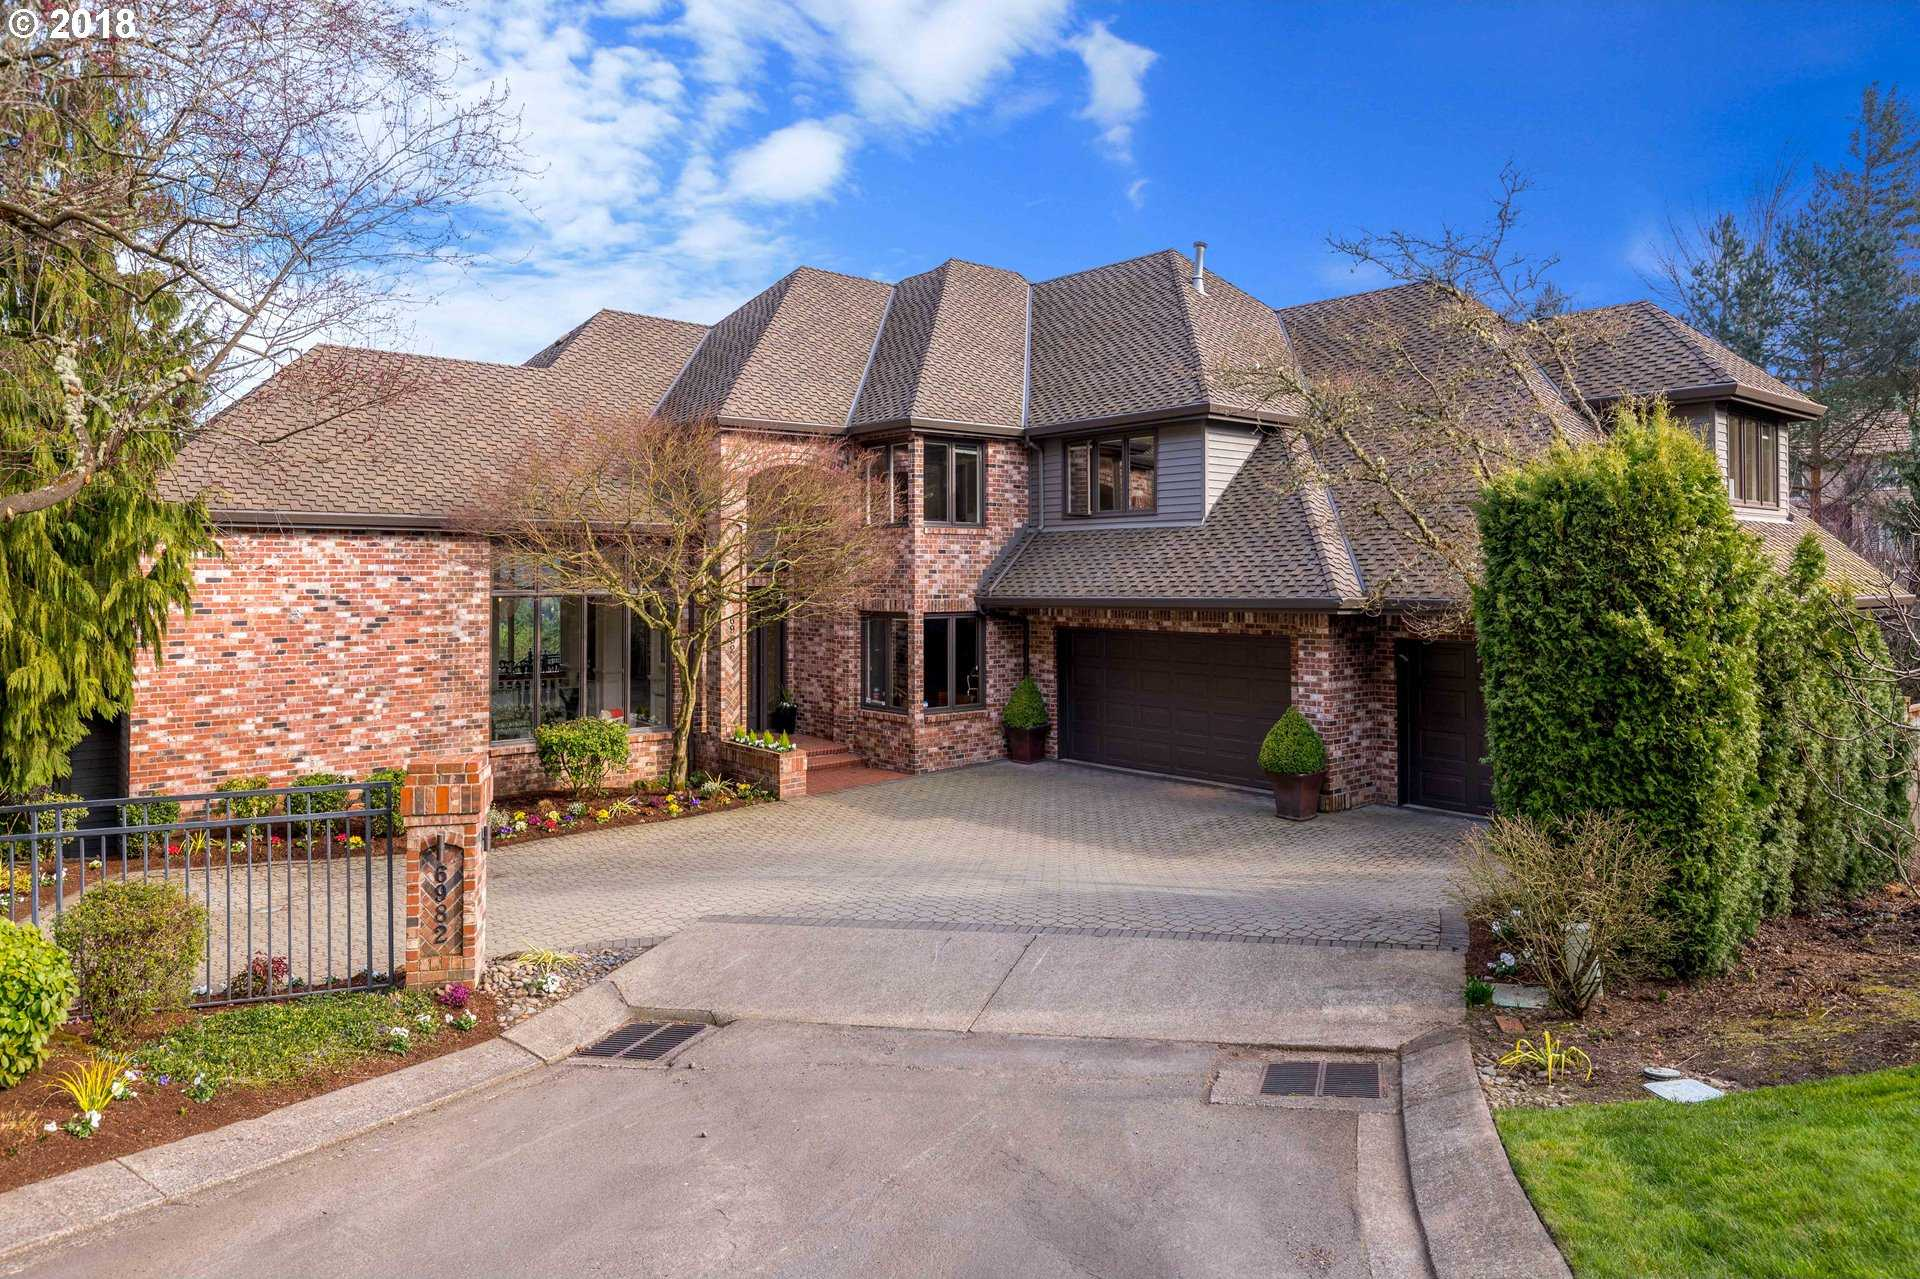 $1,650,000 - 5Br/4Ba -  for Sale in Portland